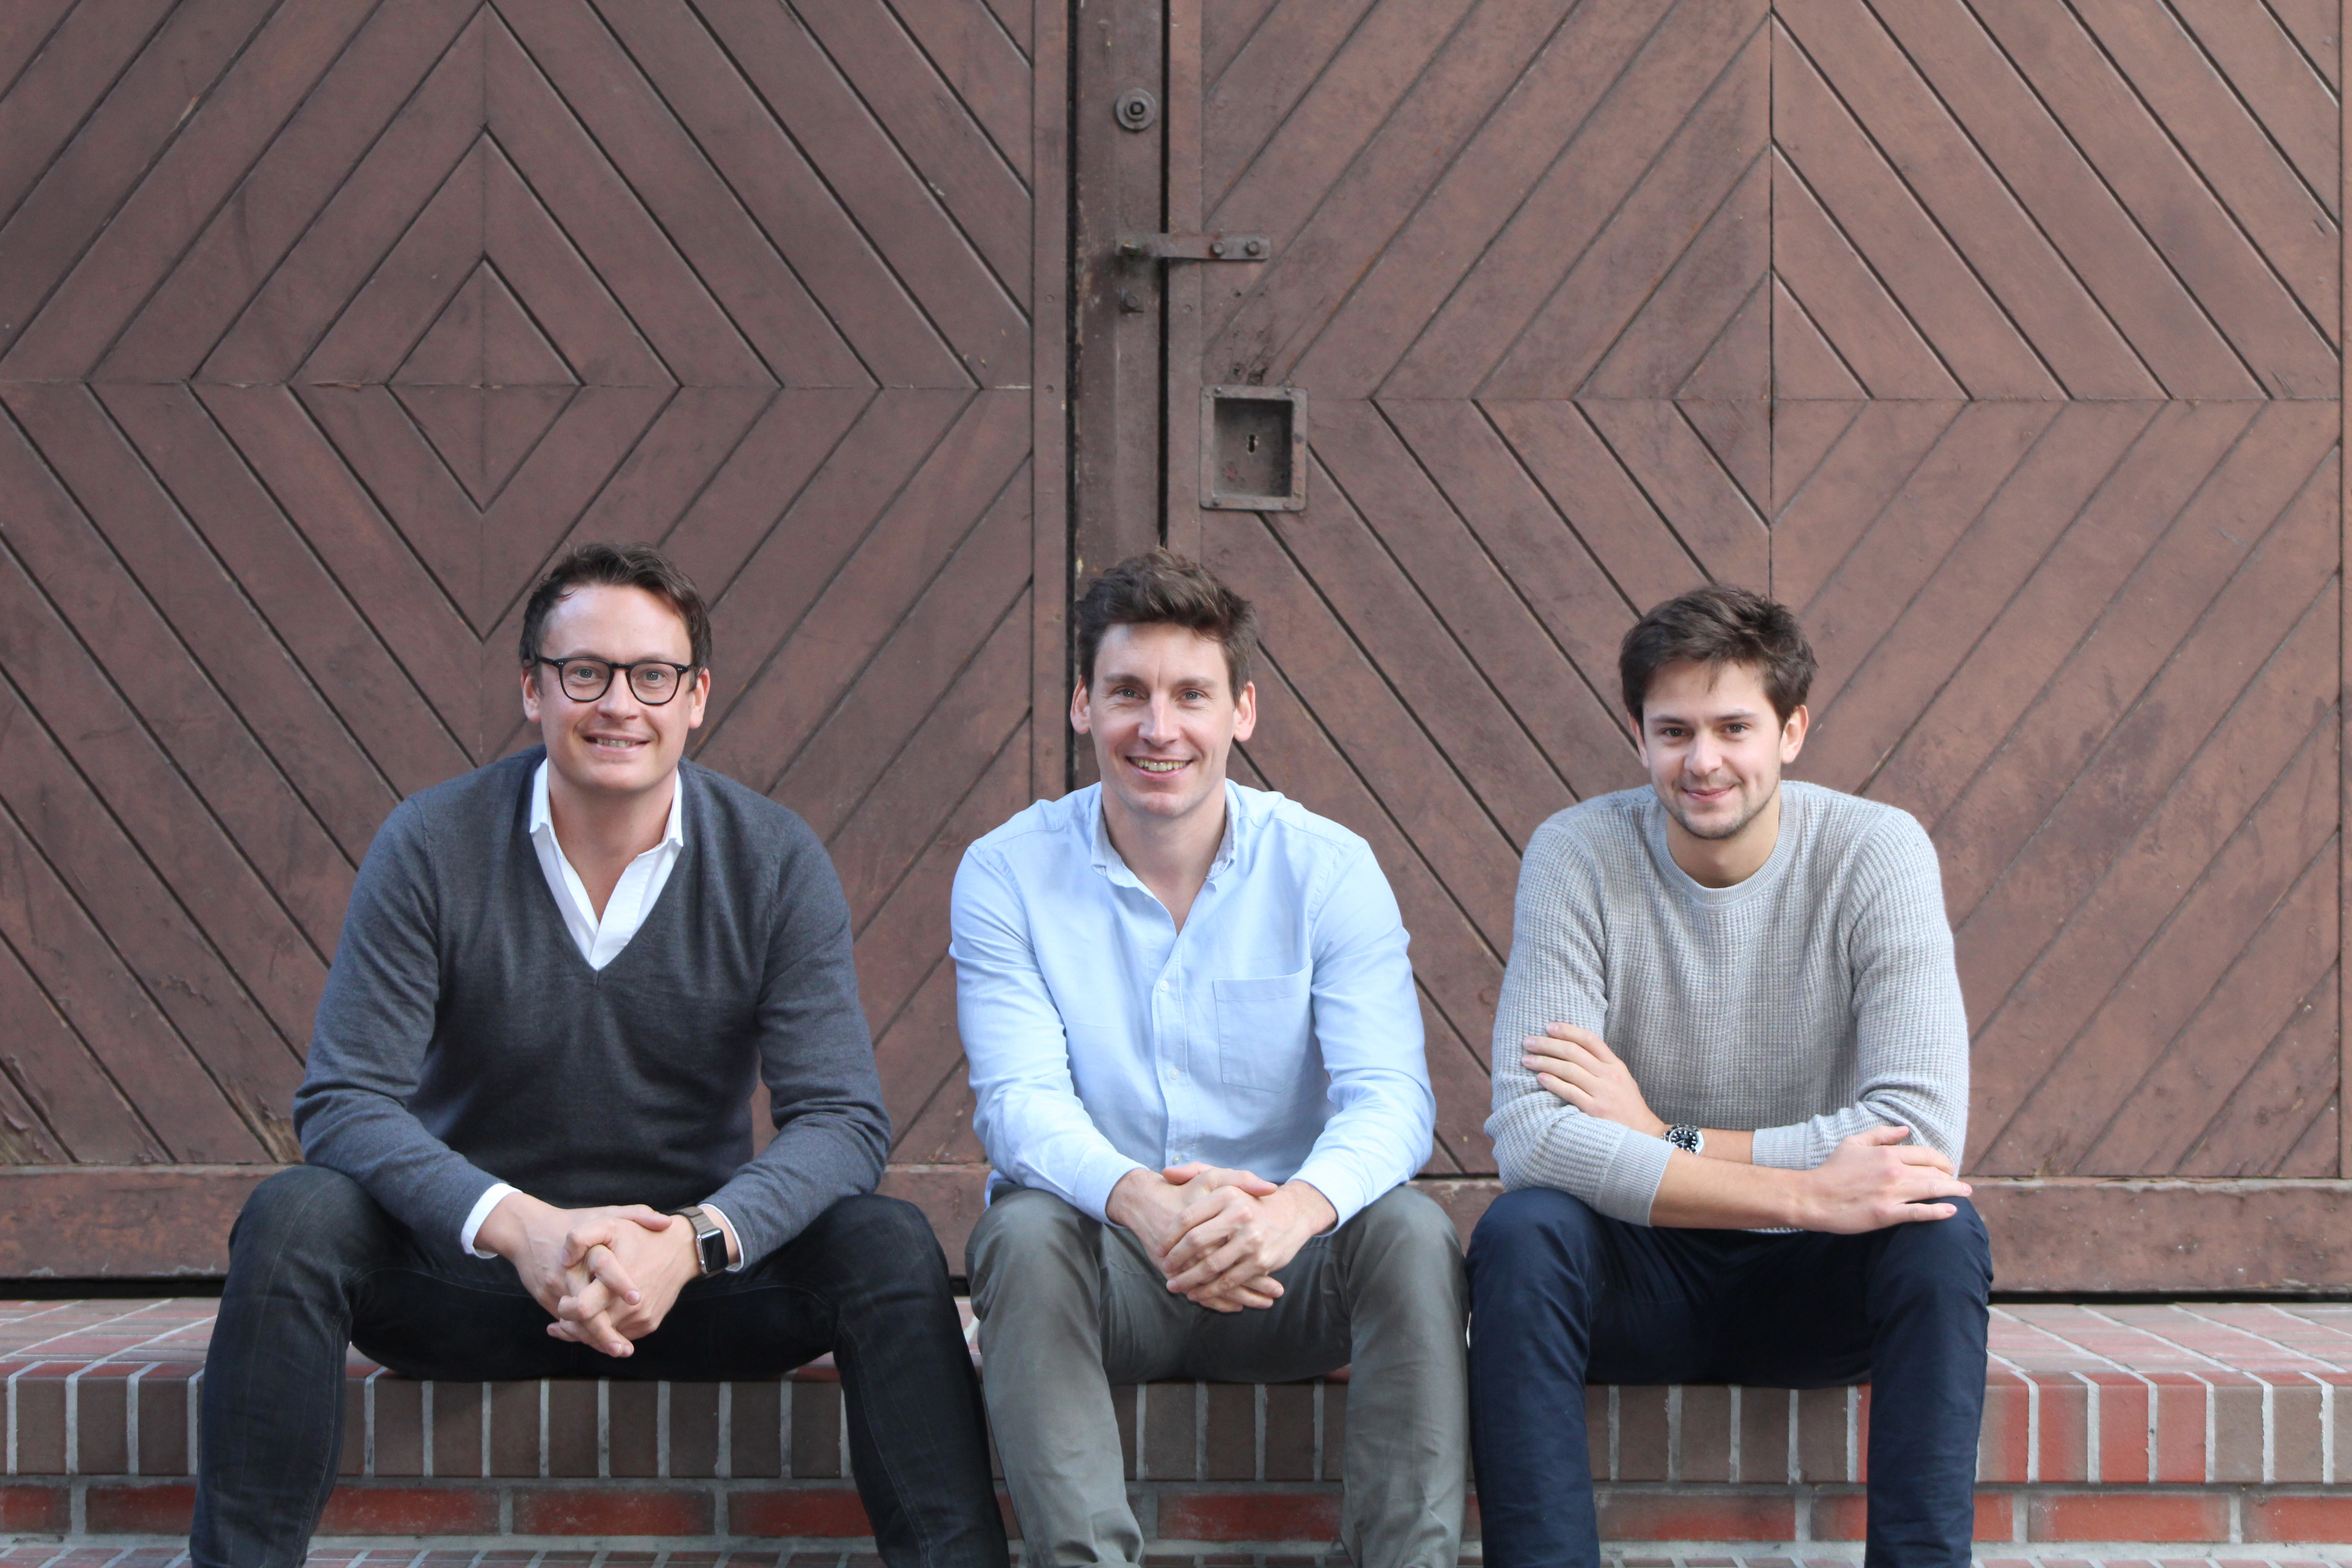 European house removals platform Movinga raises up to another €22M